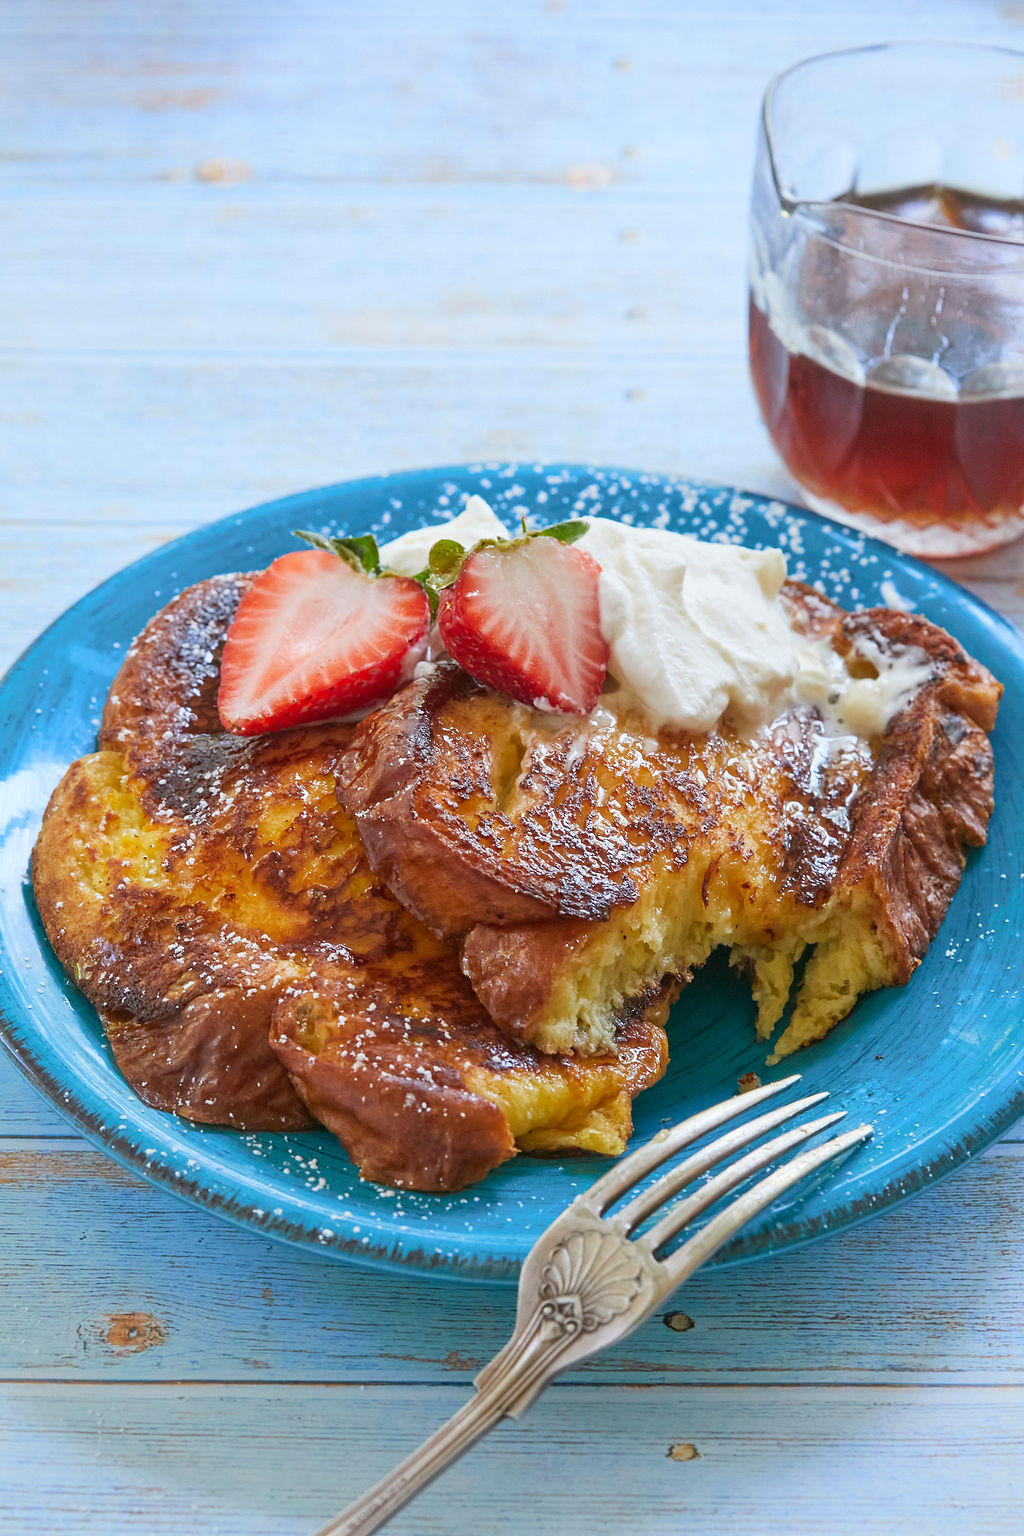 Topped with cream and berries, this Brioche French Toast recipe was too good not to take a bite.